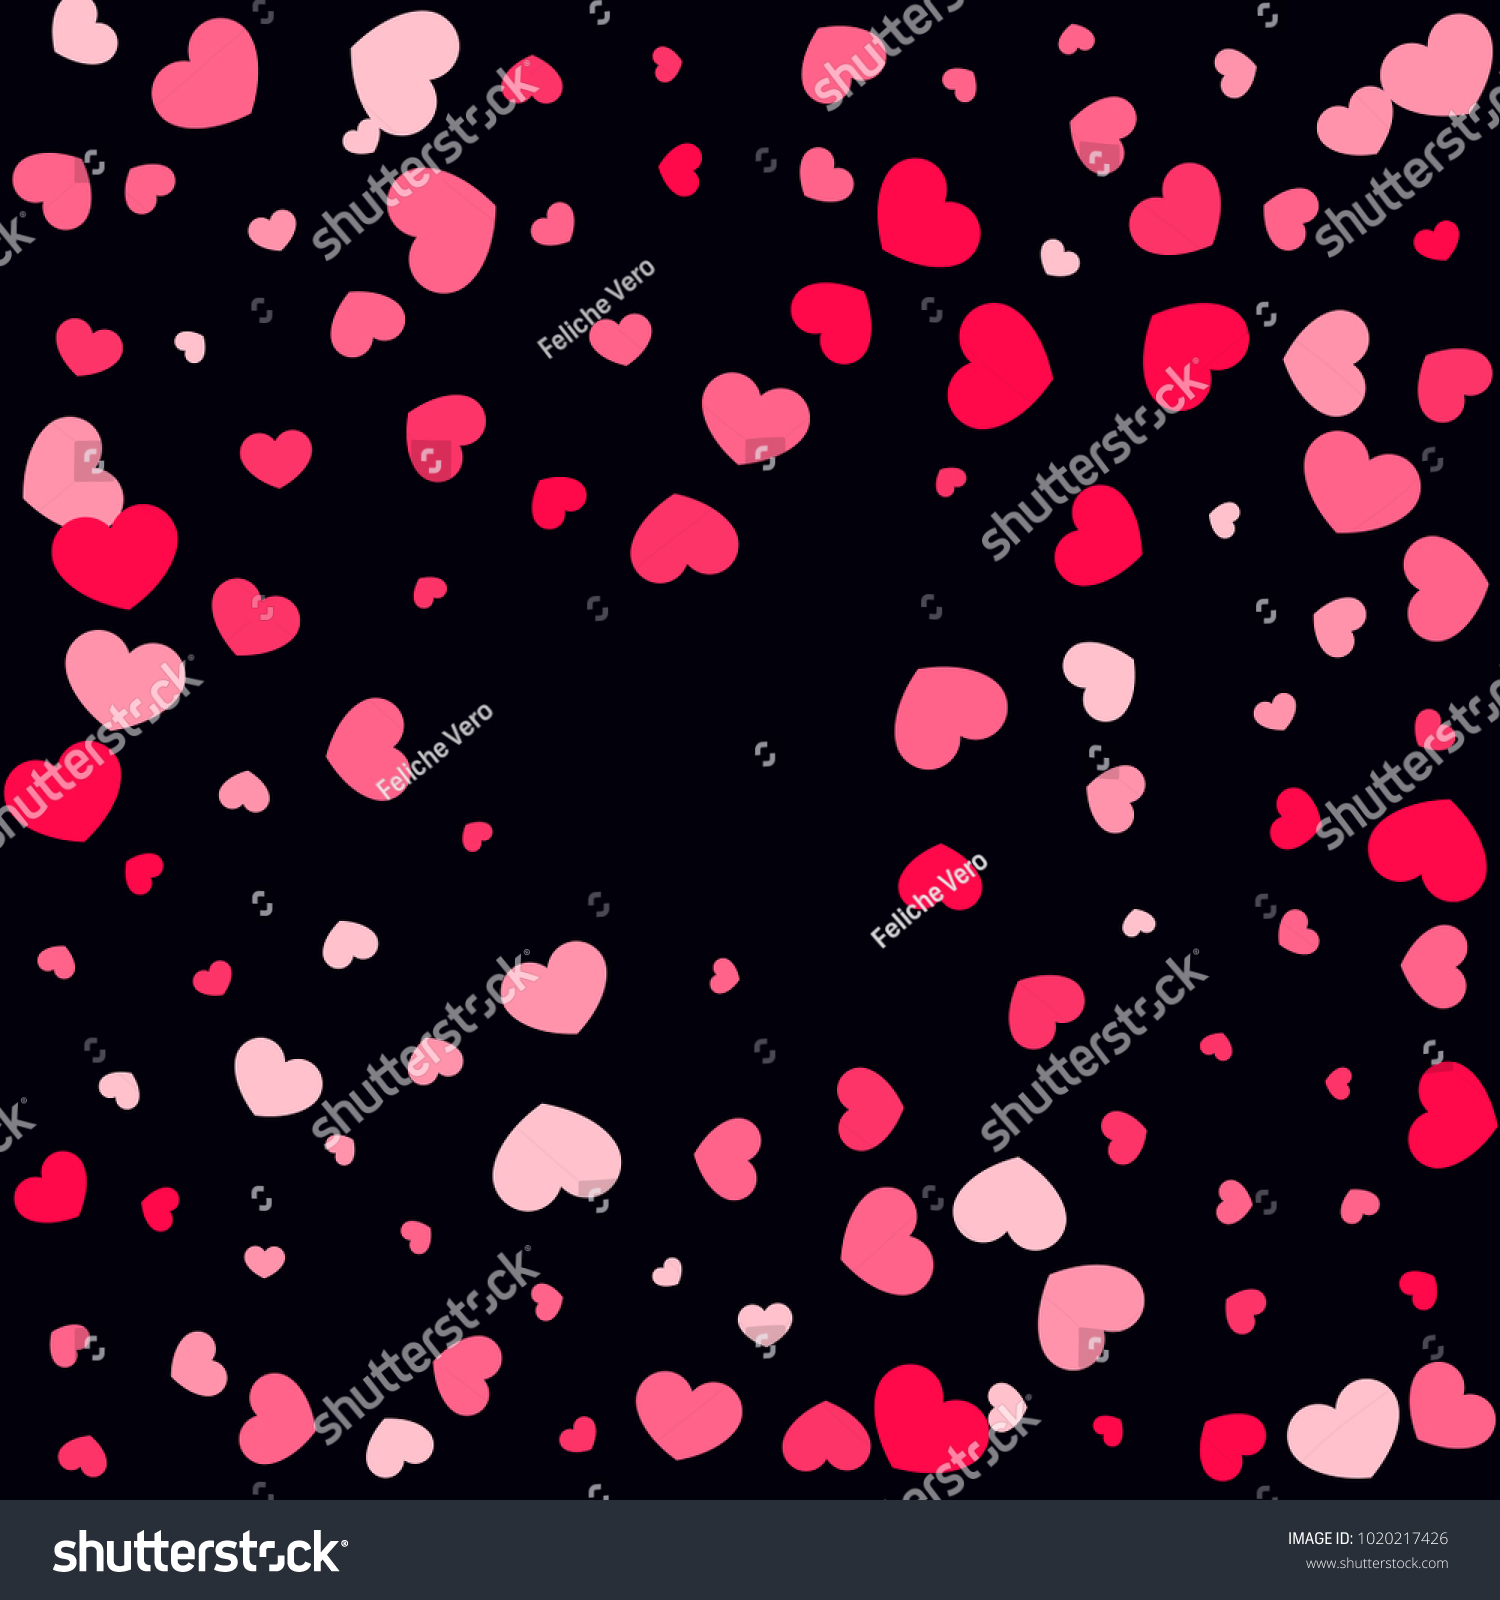 Pink Hearts Random Falling On Black Stock Vector Royalty Free